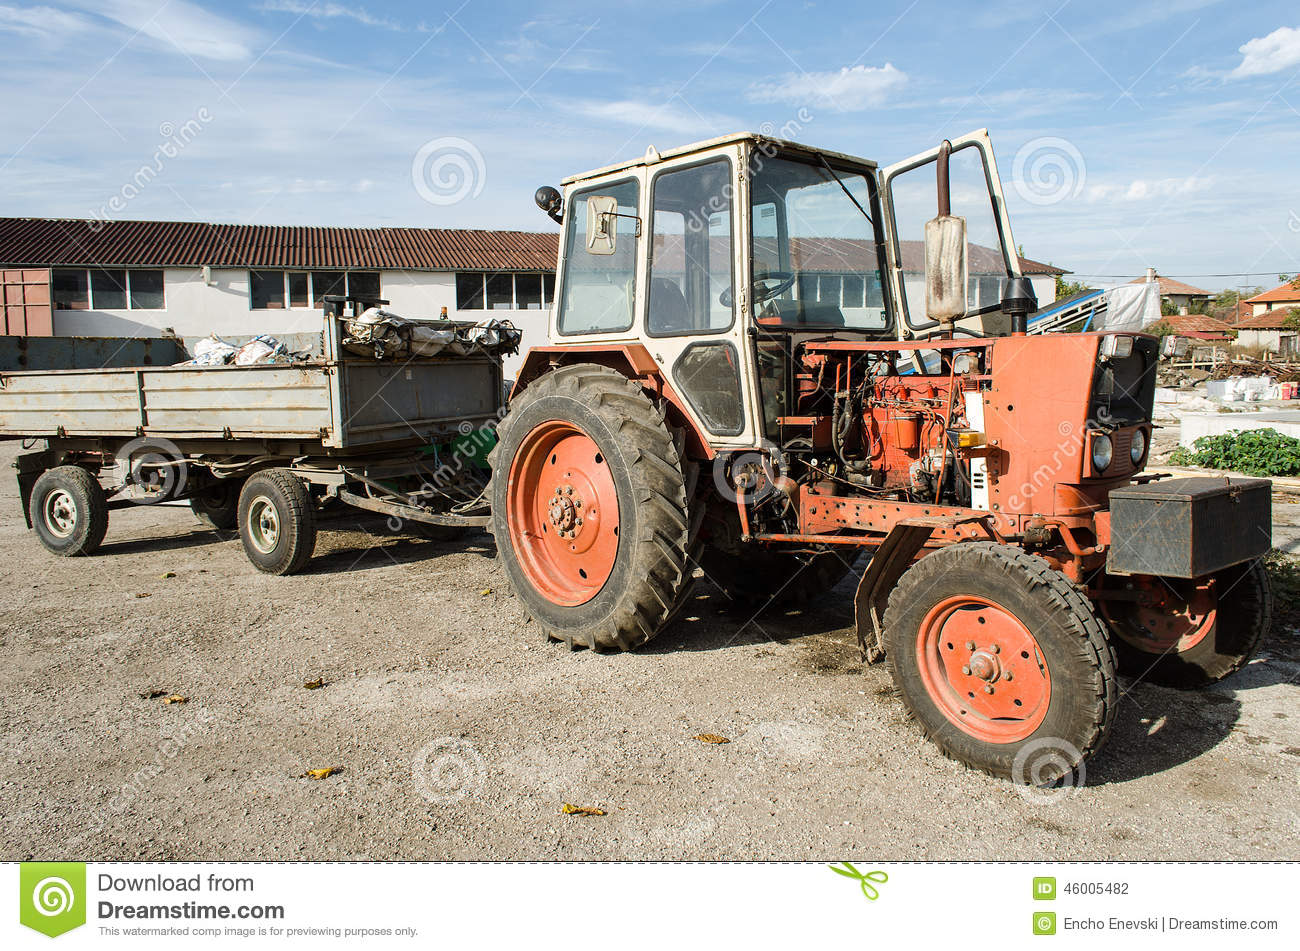 Small Tractor Cartoon : Old abandoned small farm tractor stock photography